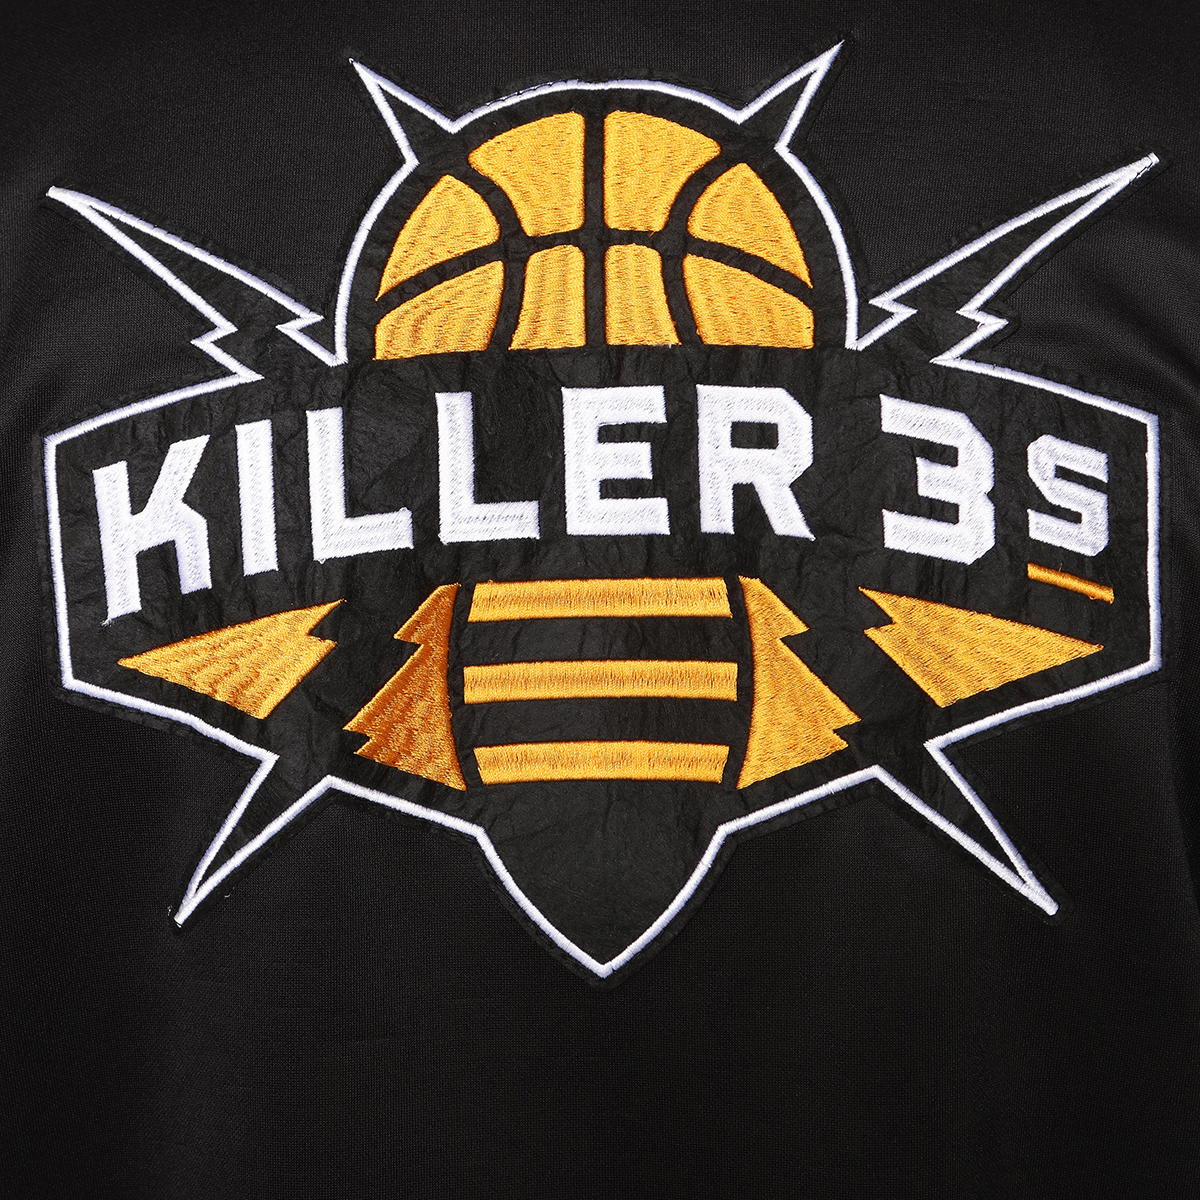 Team Killer 3'S Jacket - Black